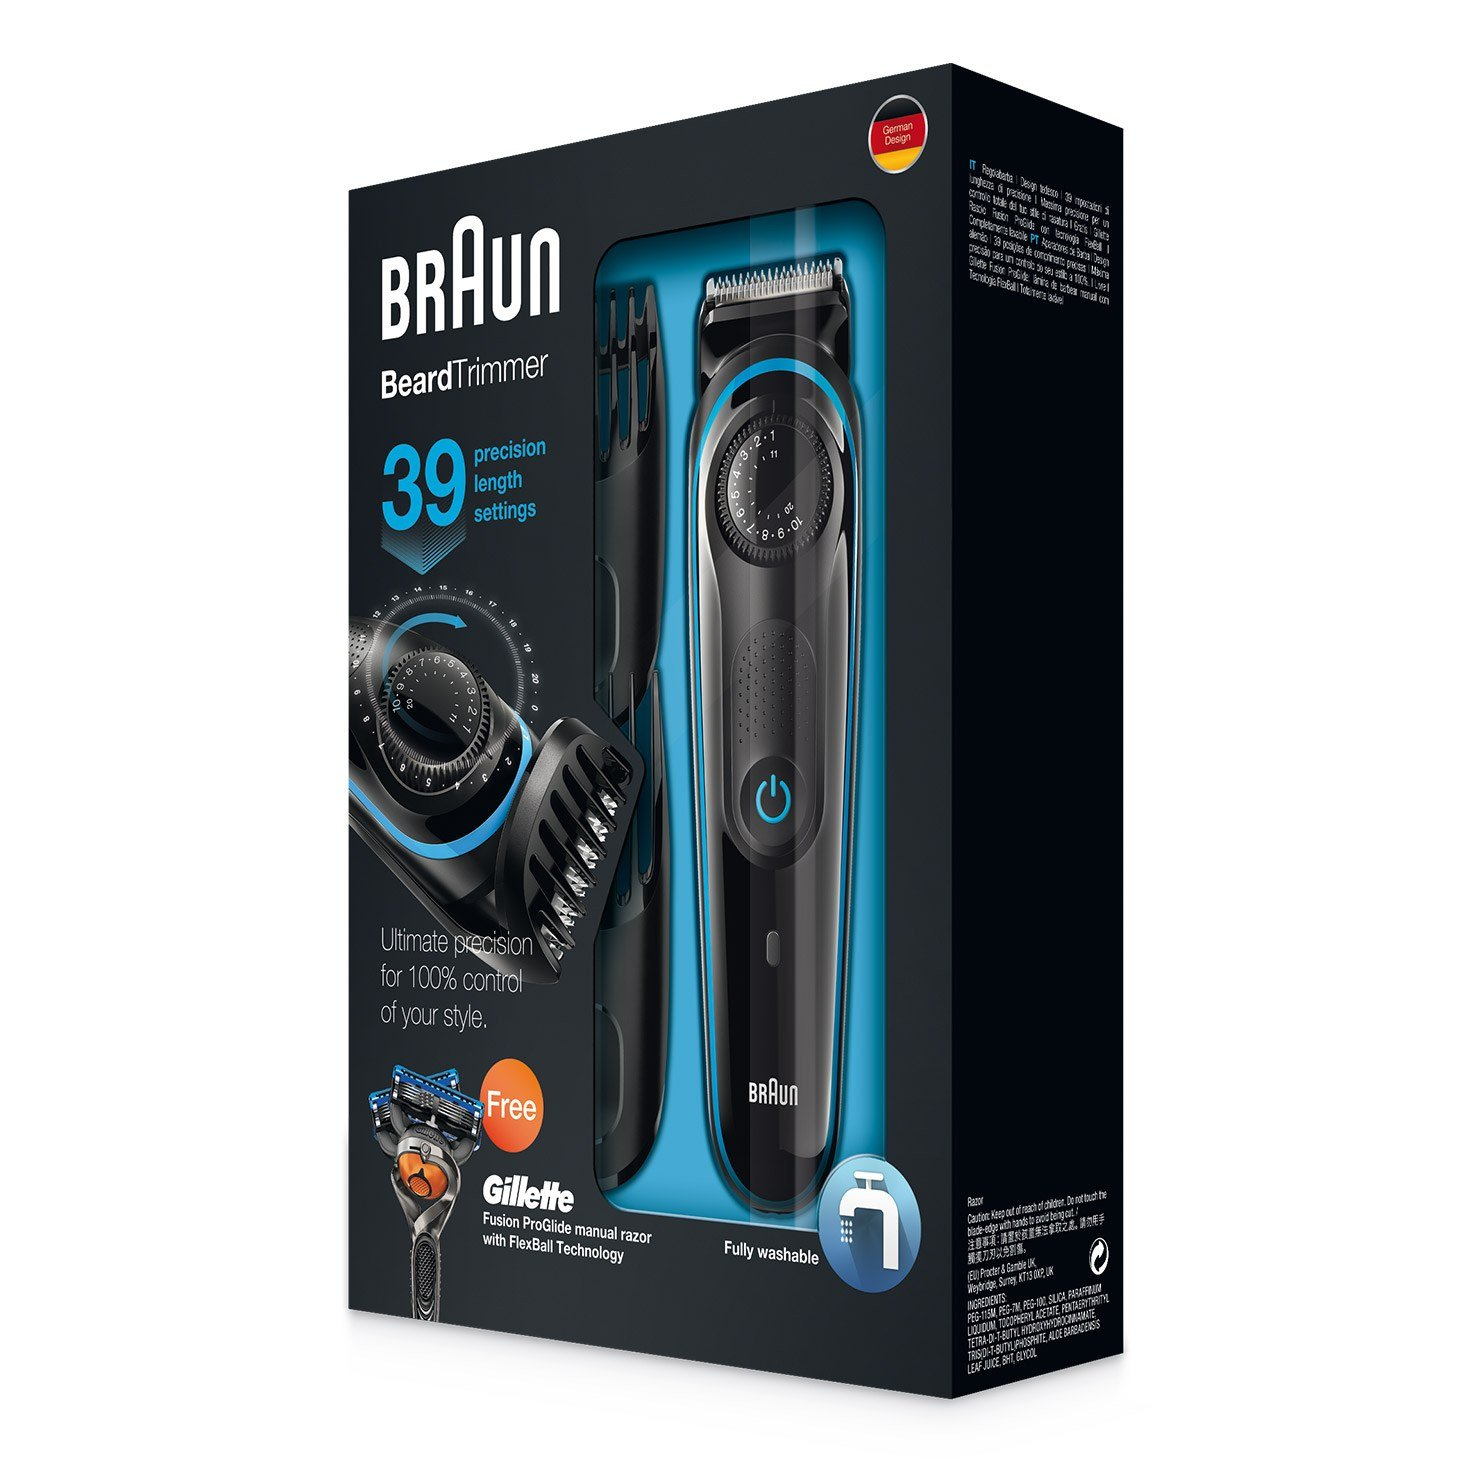 Braun Beard Trimmer BT3040 package